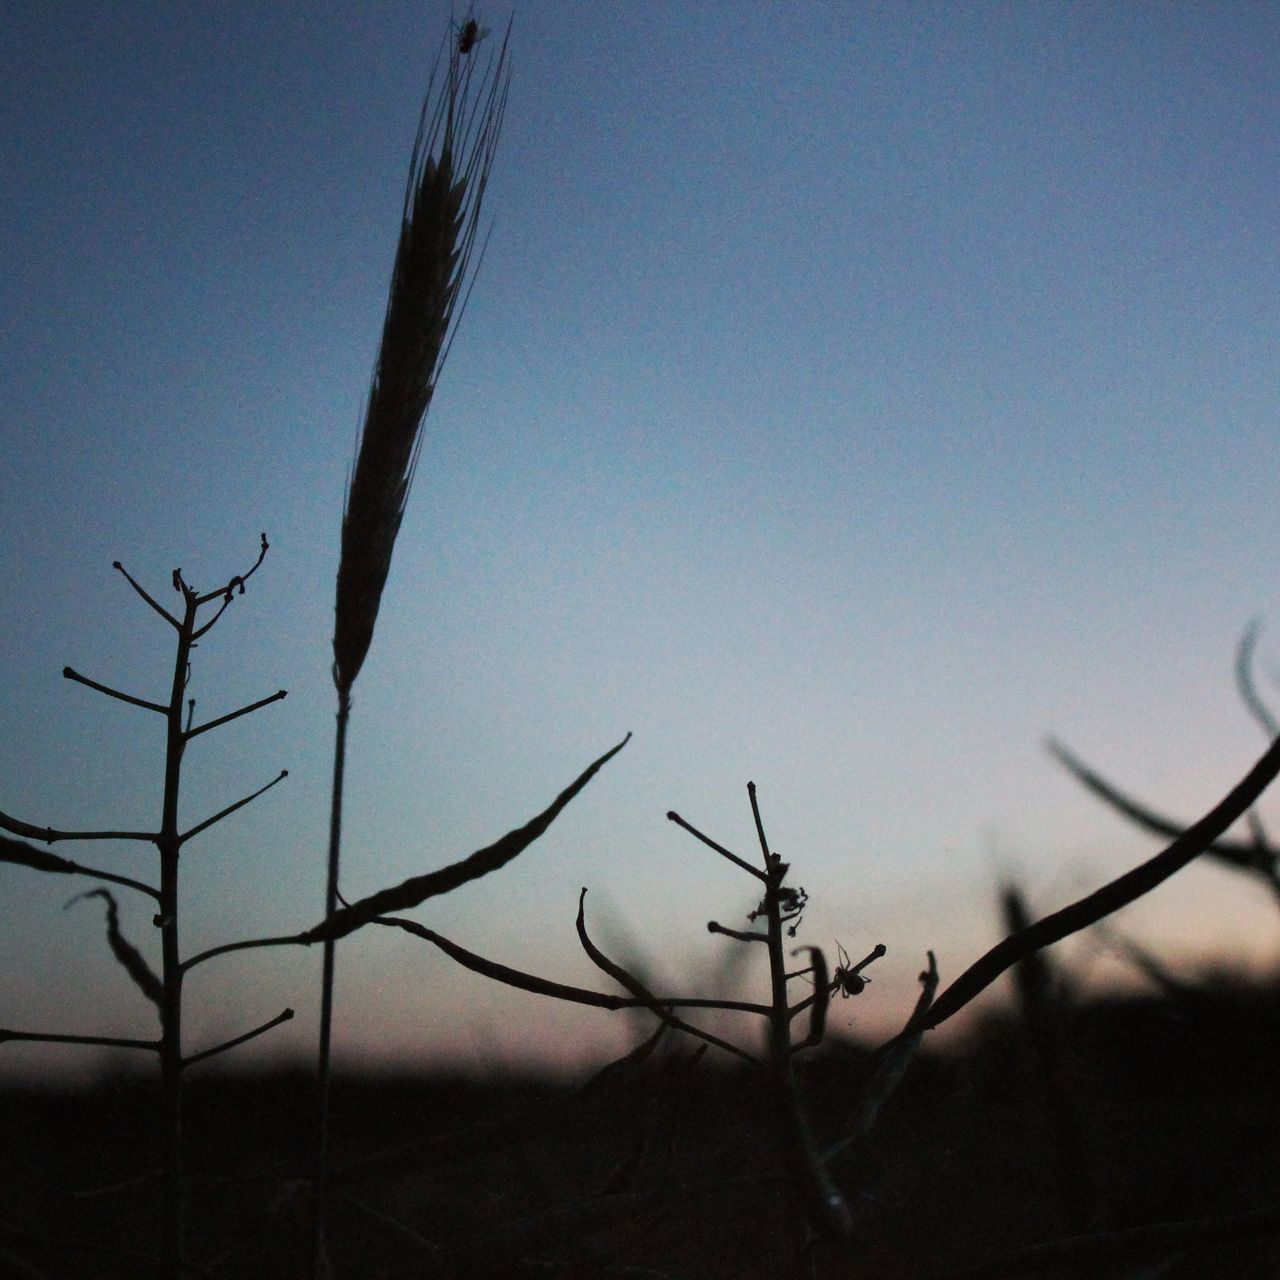 nature, no people, outdoors, clear sky, tranquility, growth, beauty in nature, day, plant, bare tree, branch, sky, close-up